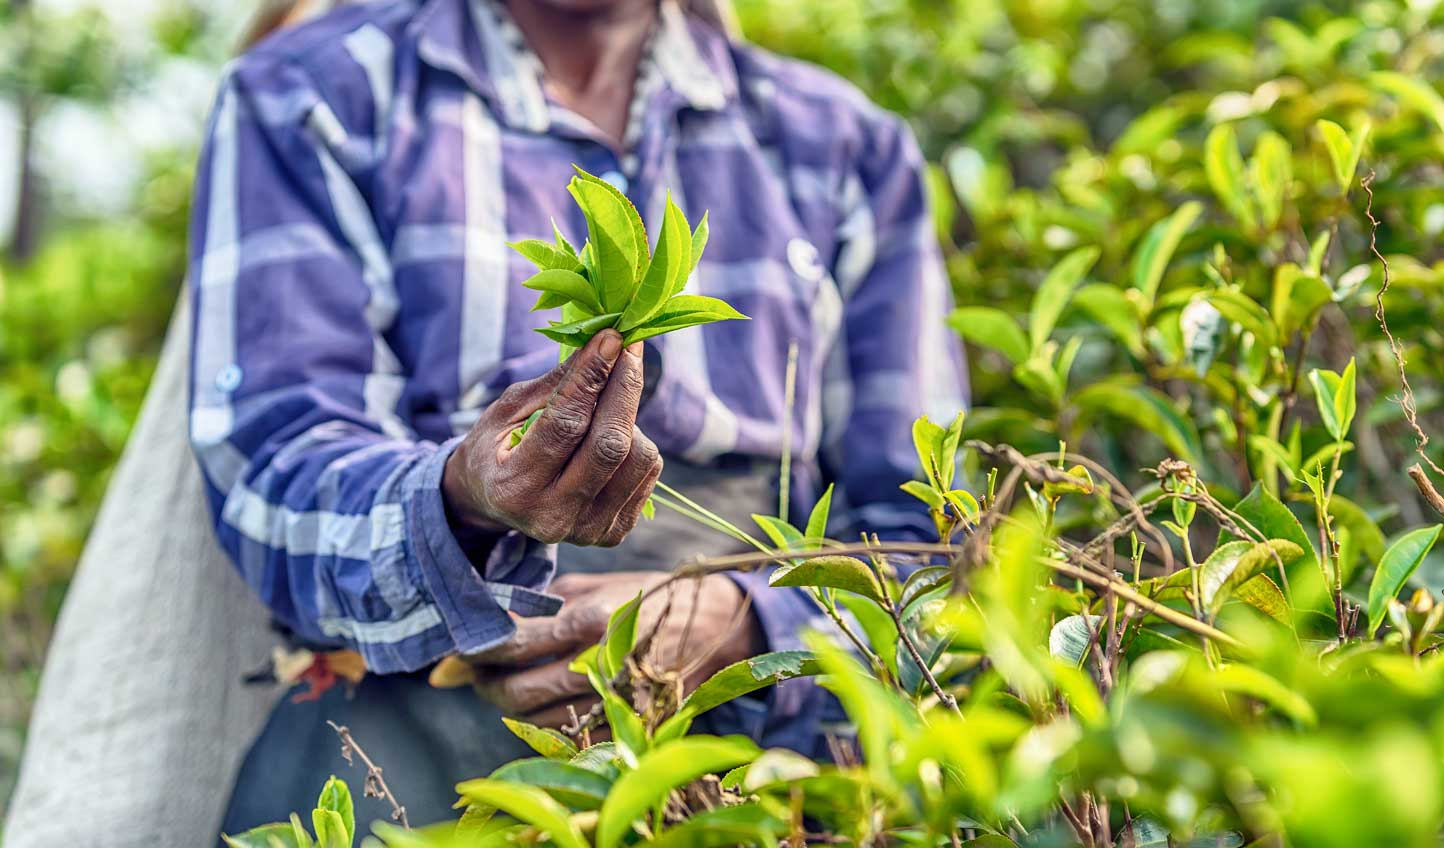 Visit a nearby tea plantation and learn about how tea goes from leaf to cup